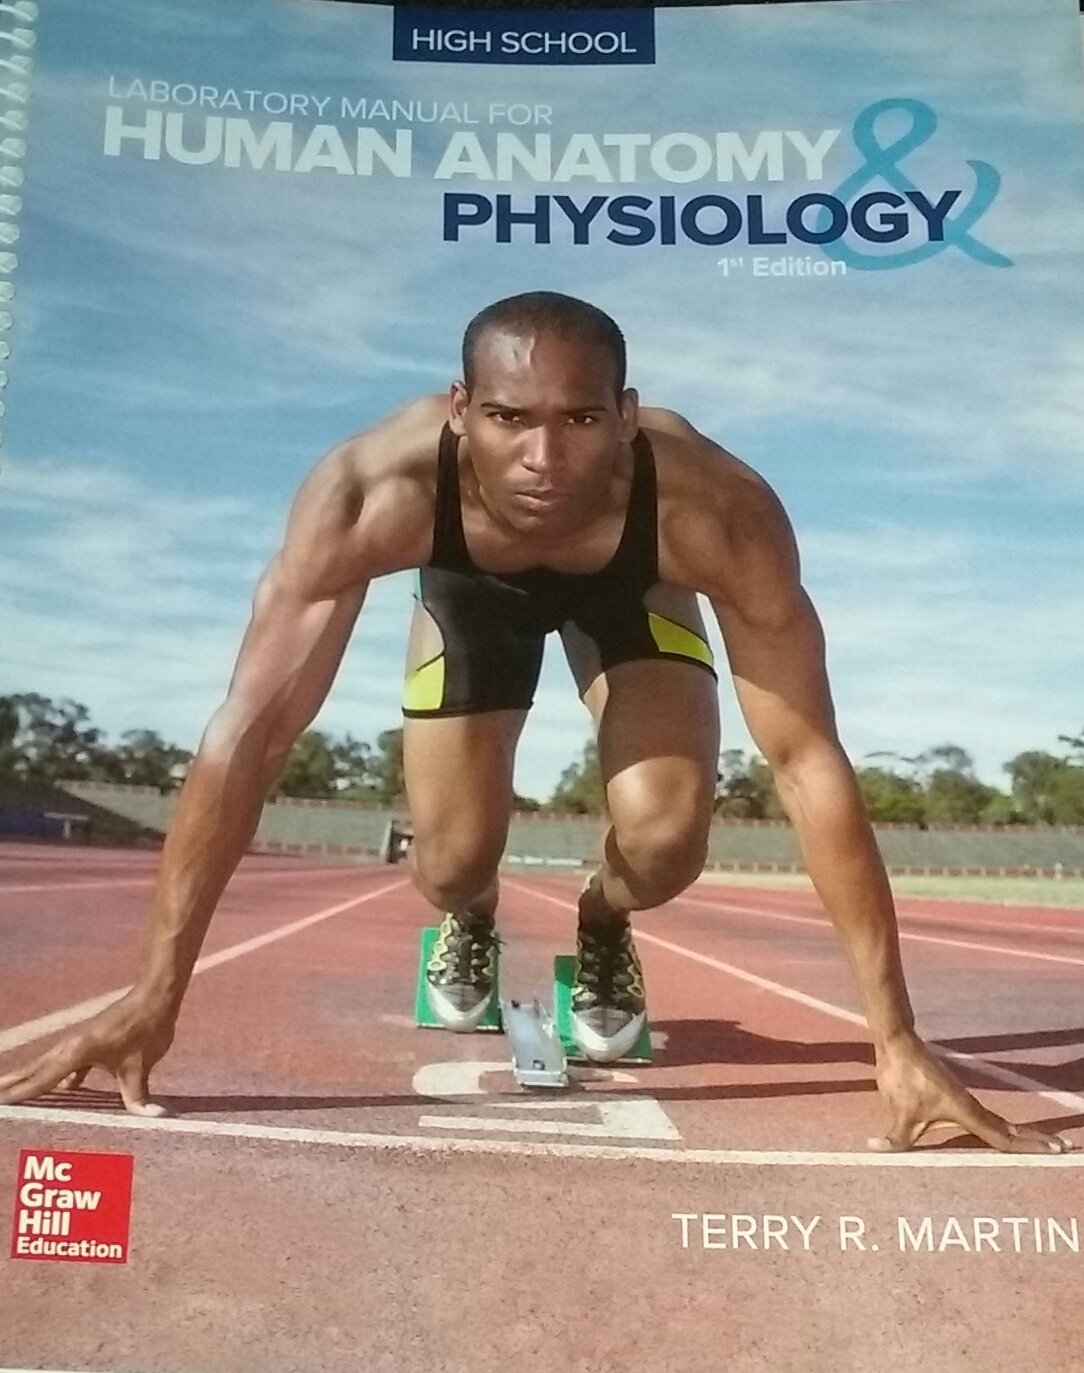 High School Laboratory Manual for Human Anatomy & Physiology (AP Hole's  Essentials of Human Anatomy & Physiology): Amazon.co.uk: Terry R Martin: ...